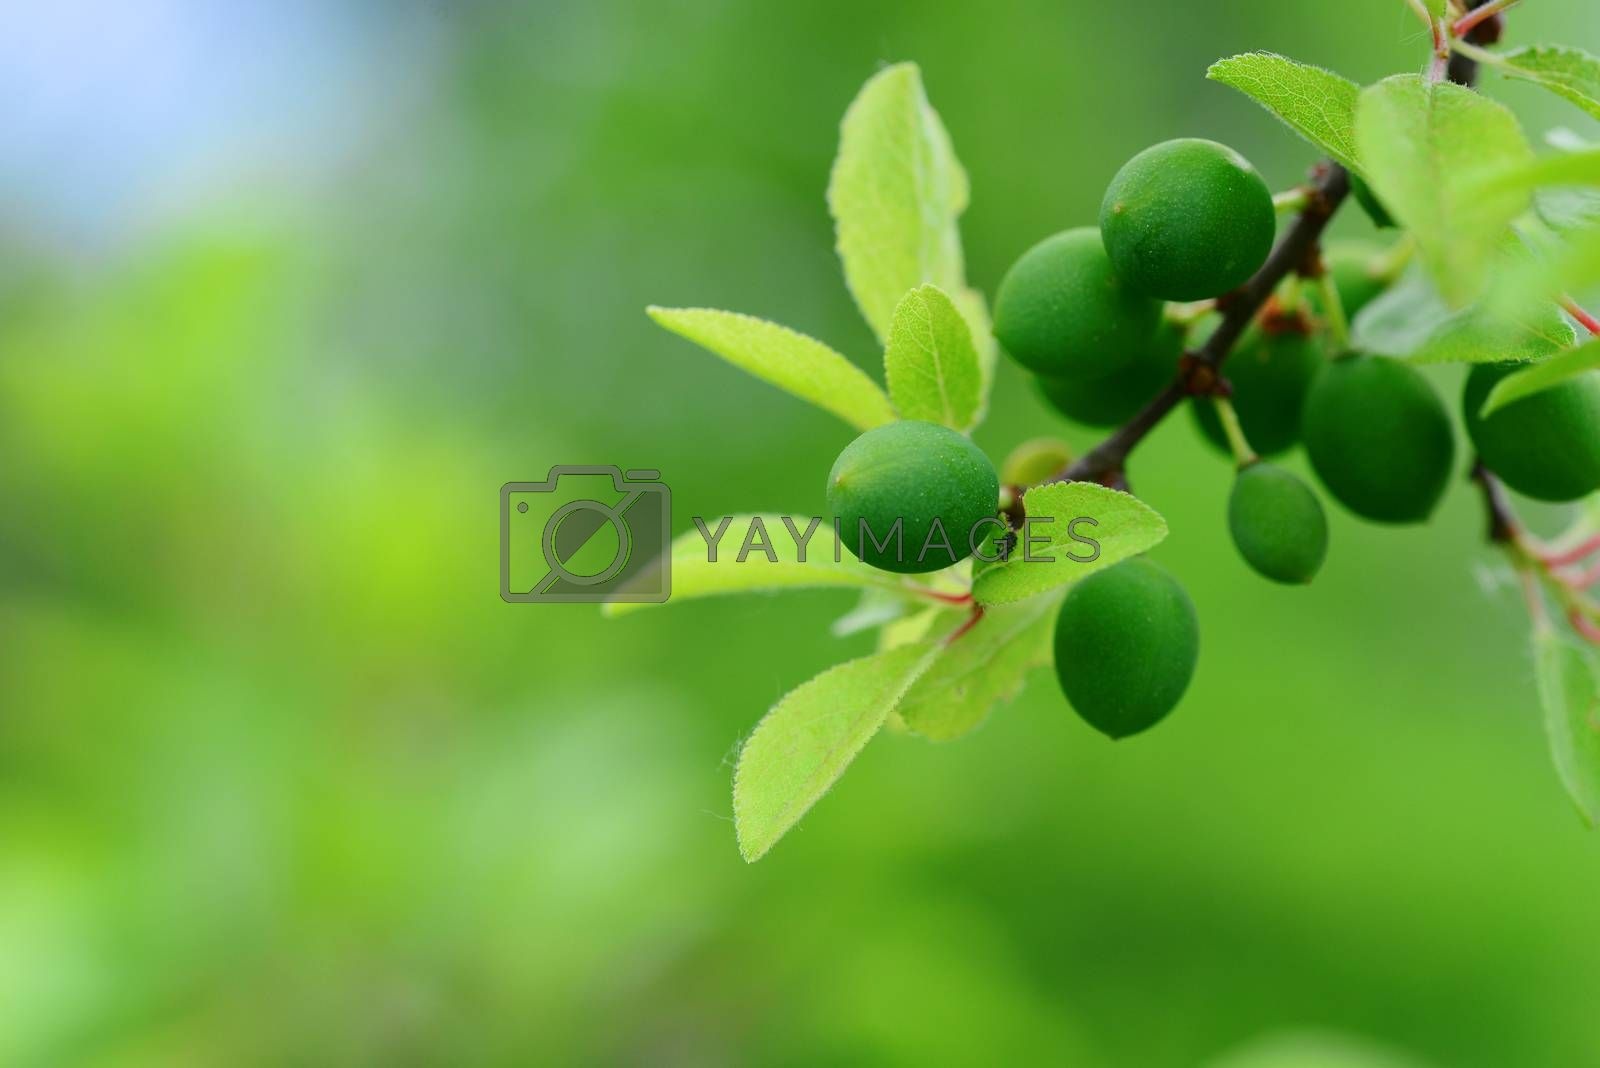 Royalty free image of Green Blackthorn fruits by tony4urban